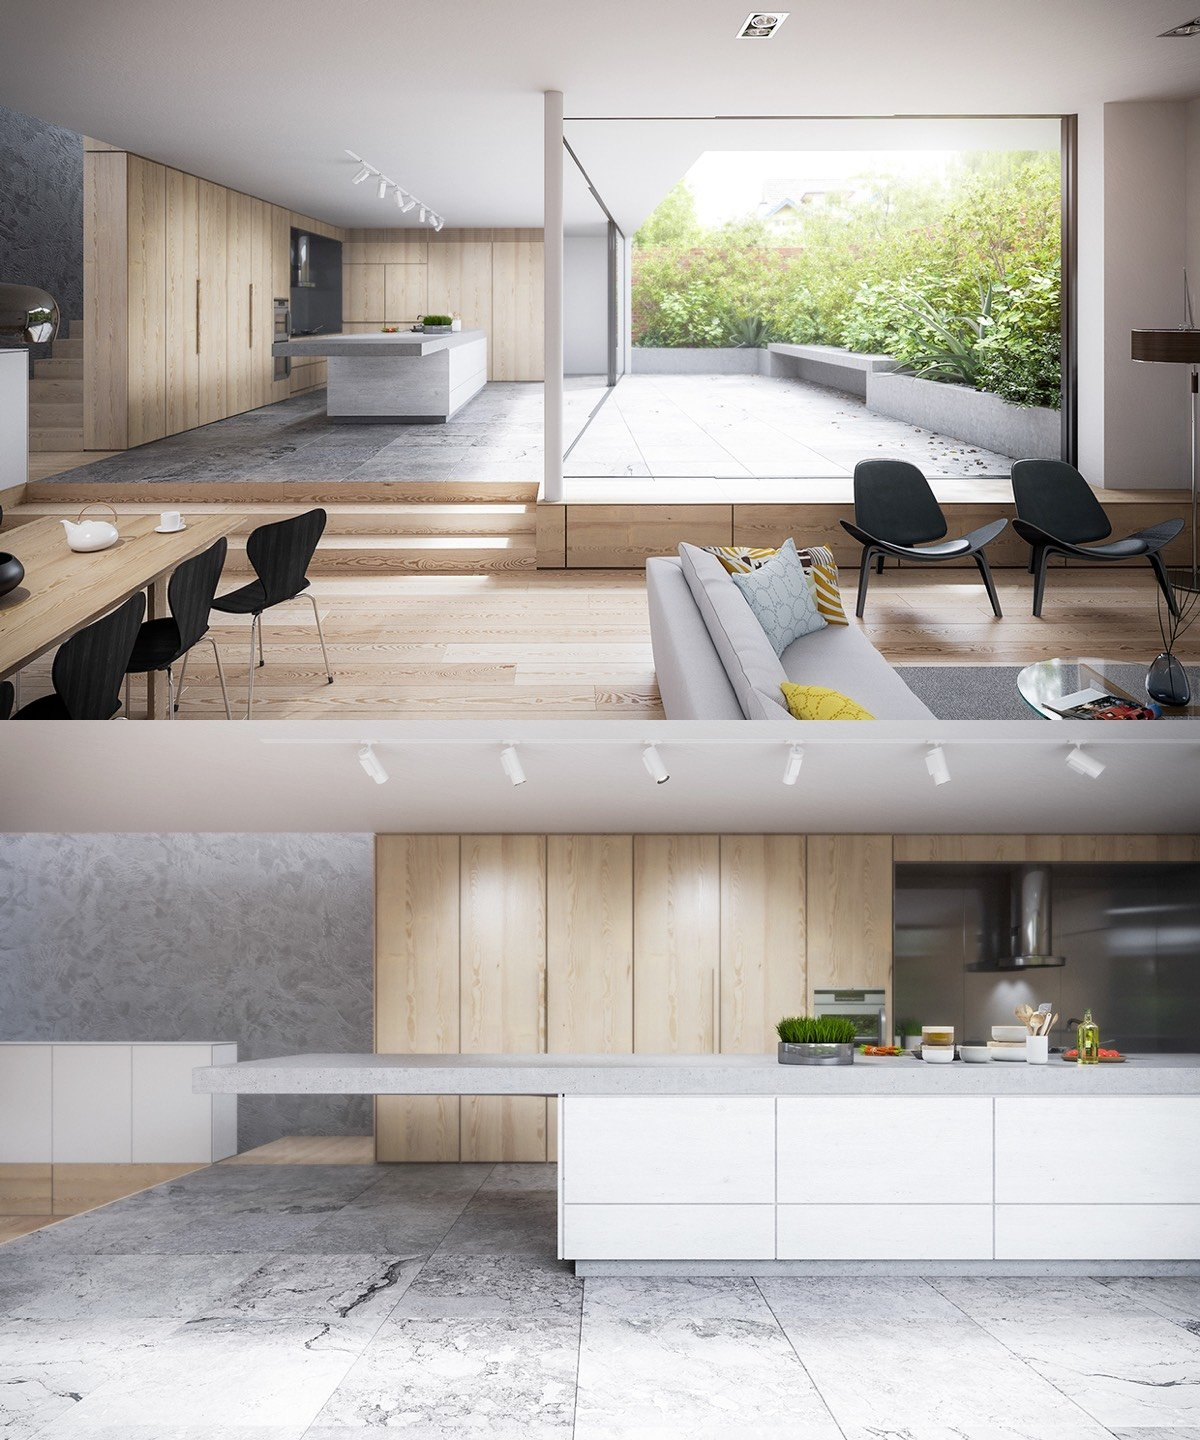 stone-kitchen-in-all-wood-interior